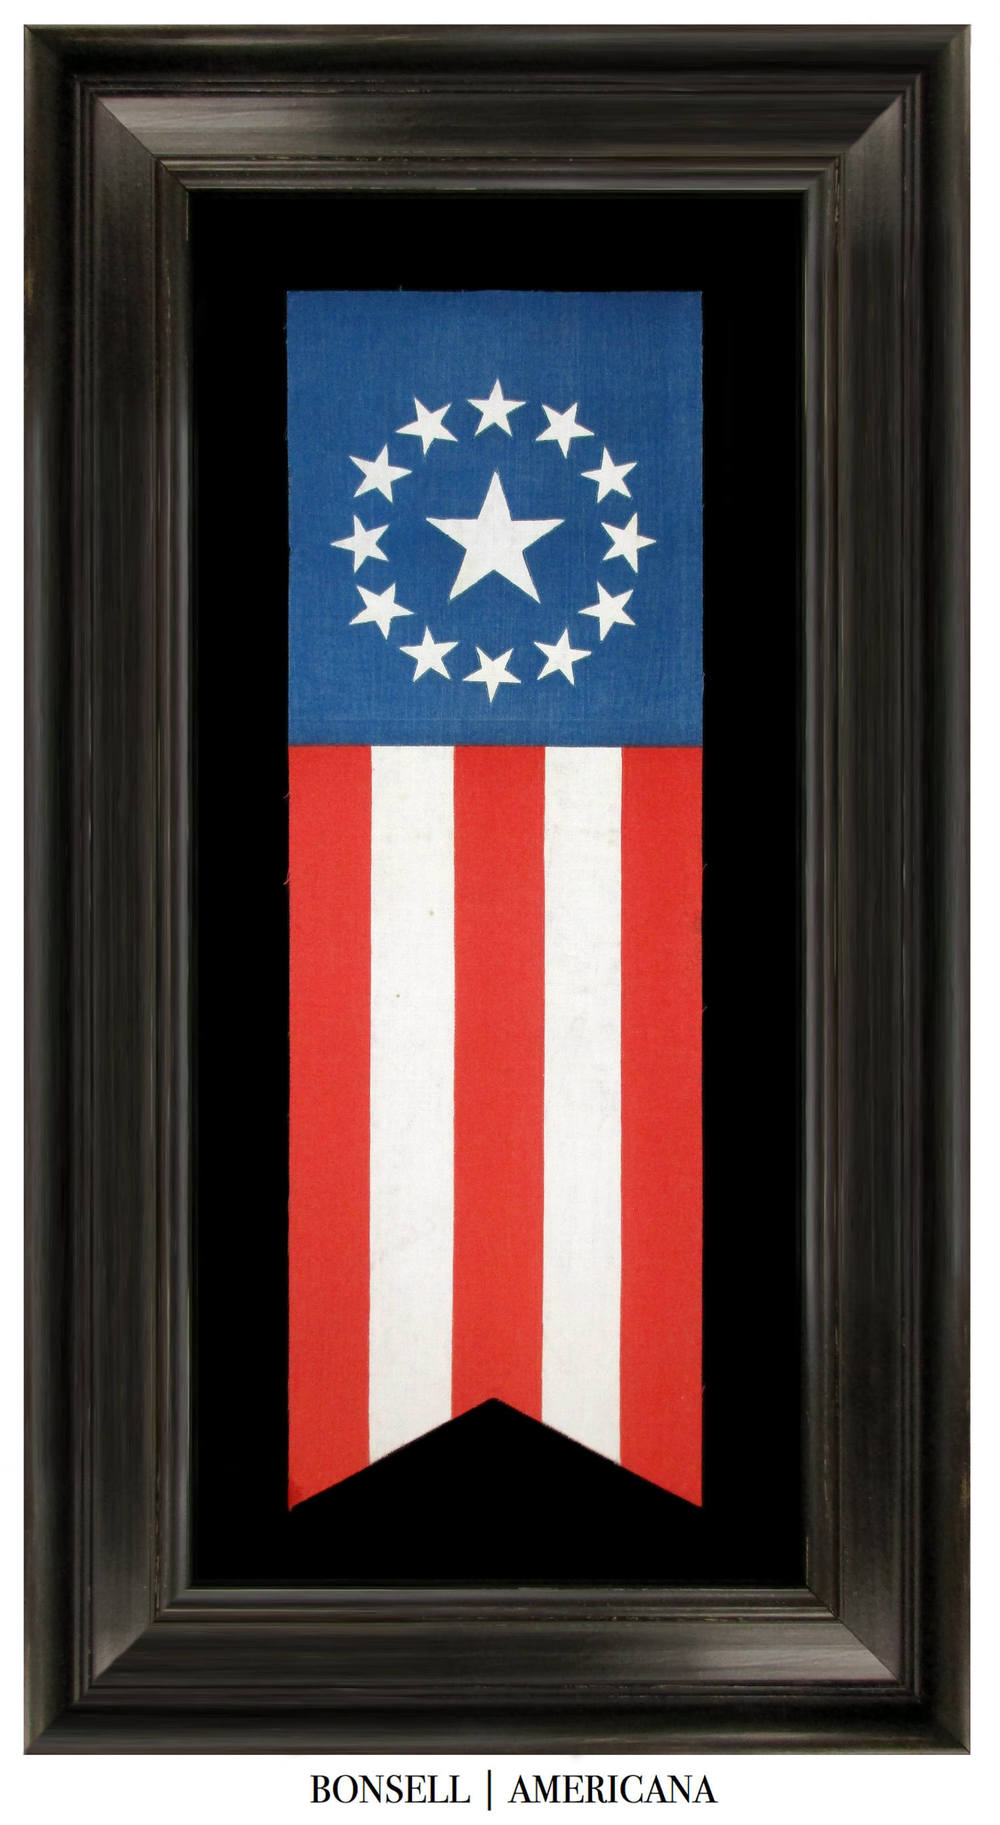 13 Star Antique Patriotic Banner with a 3rd Maryland Style Star ...